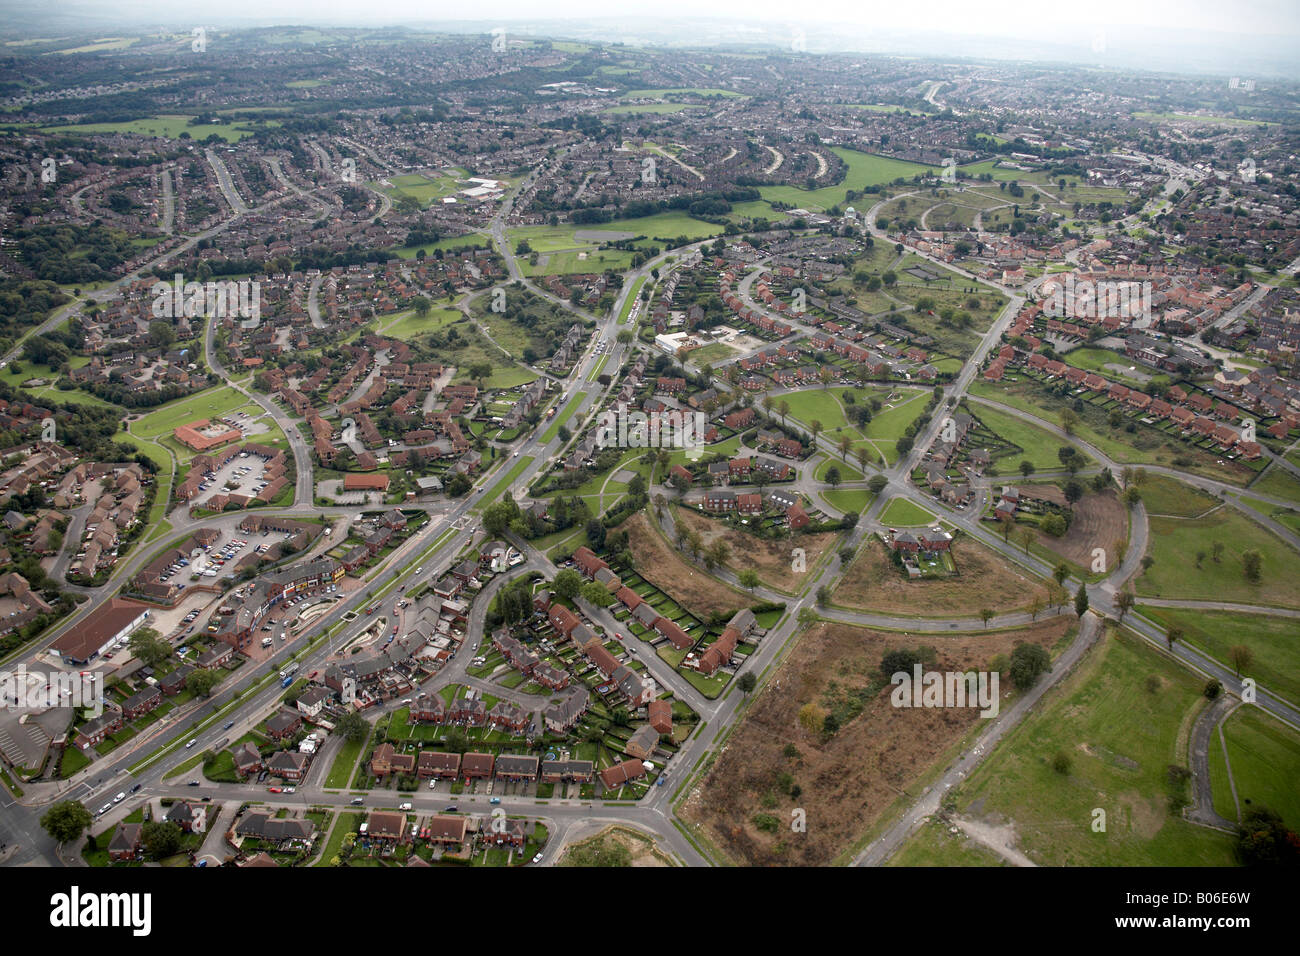 Aerial view south east of suburban housing The Circle Close Harborough Avenue Prince of Wales Road A6102 Sheffield - Stock Image